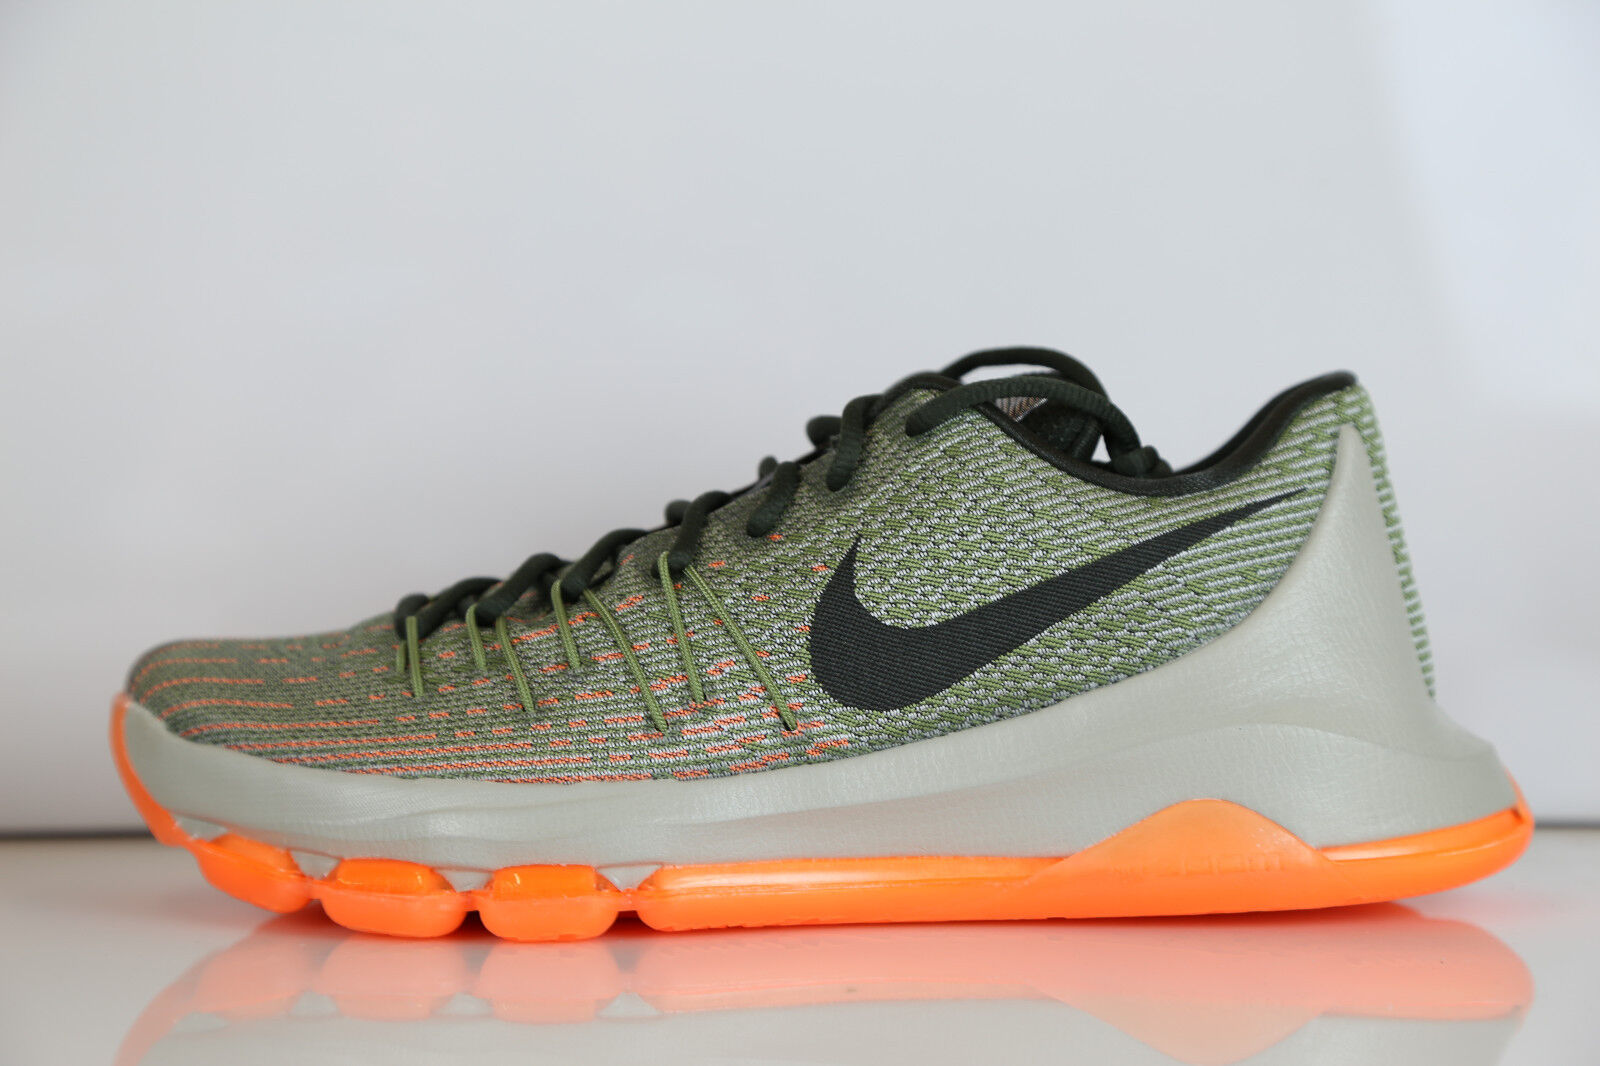 Nike KD 8 Alligator Easy Euro Citrus  Gris  Bright Citrus Euro 749375-033 8-13 what 7 air max 24eb58